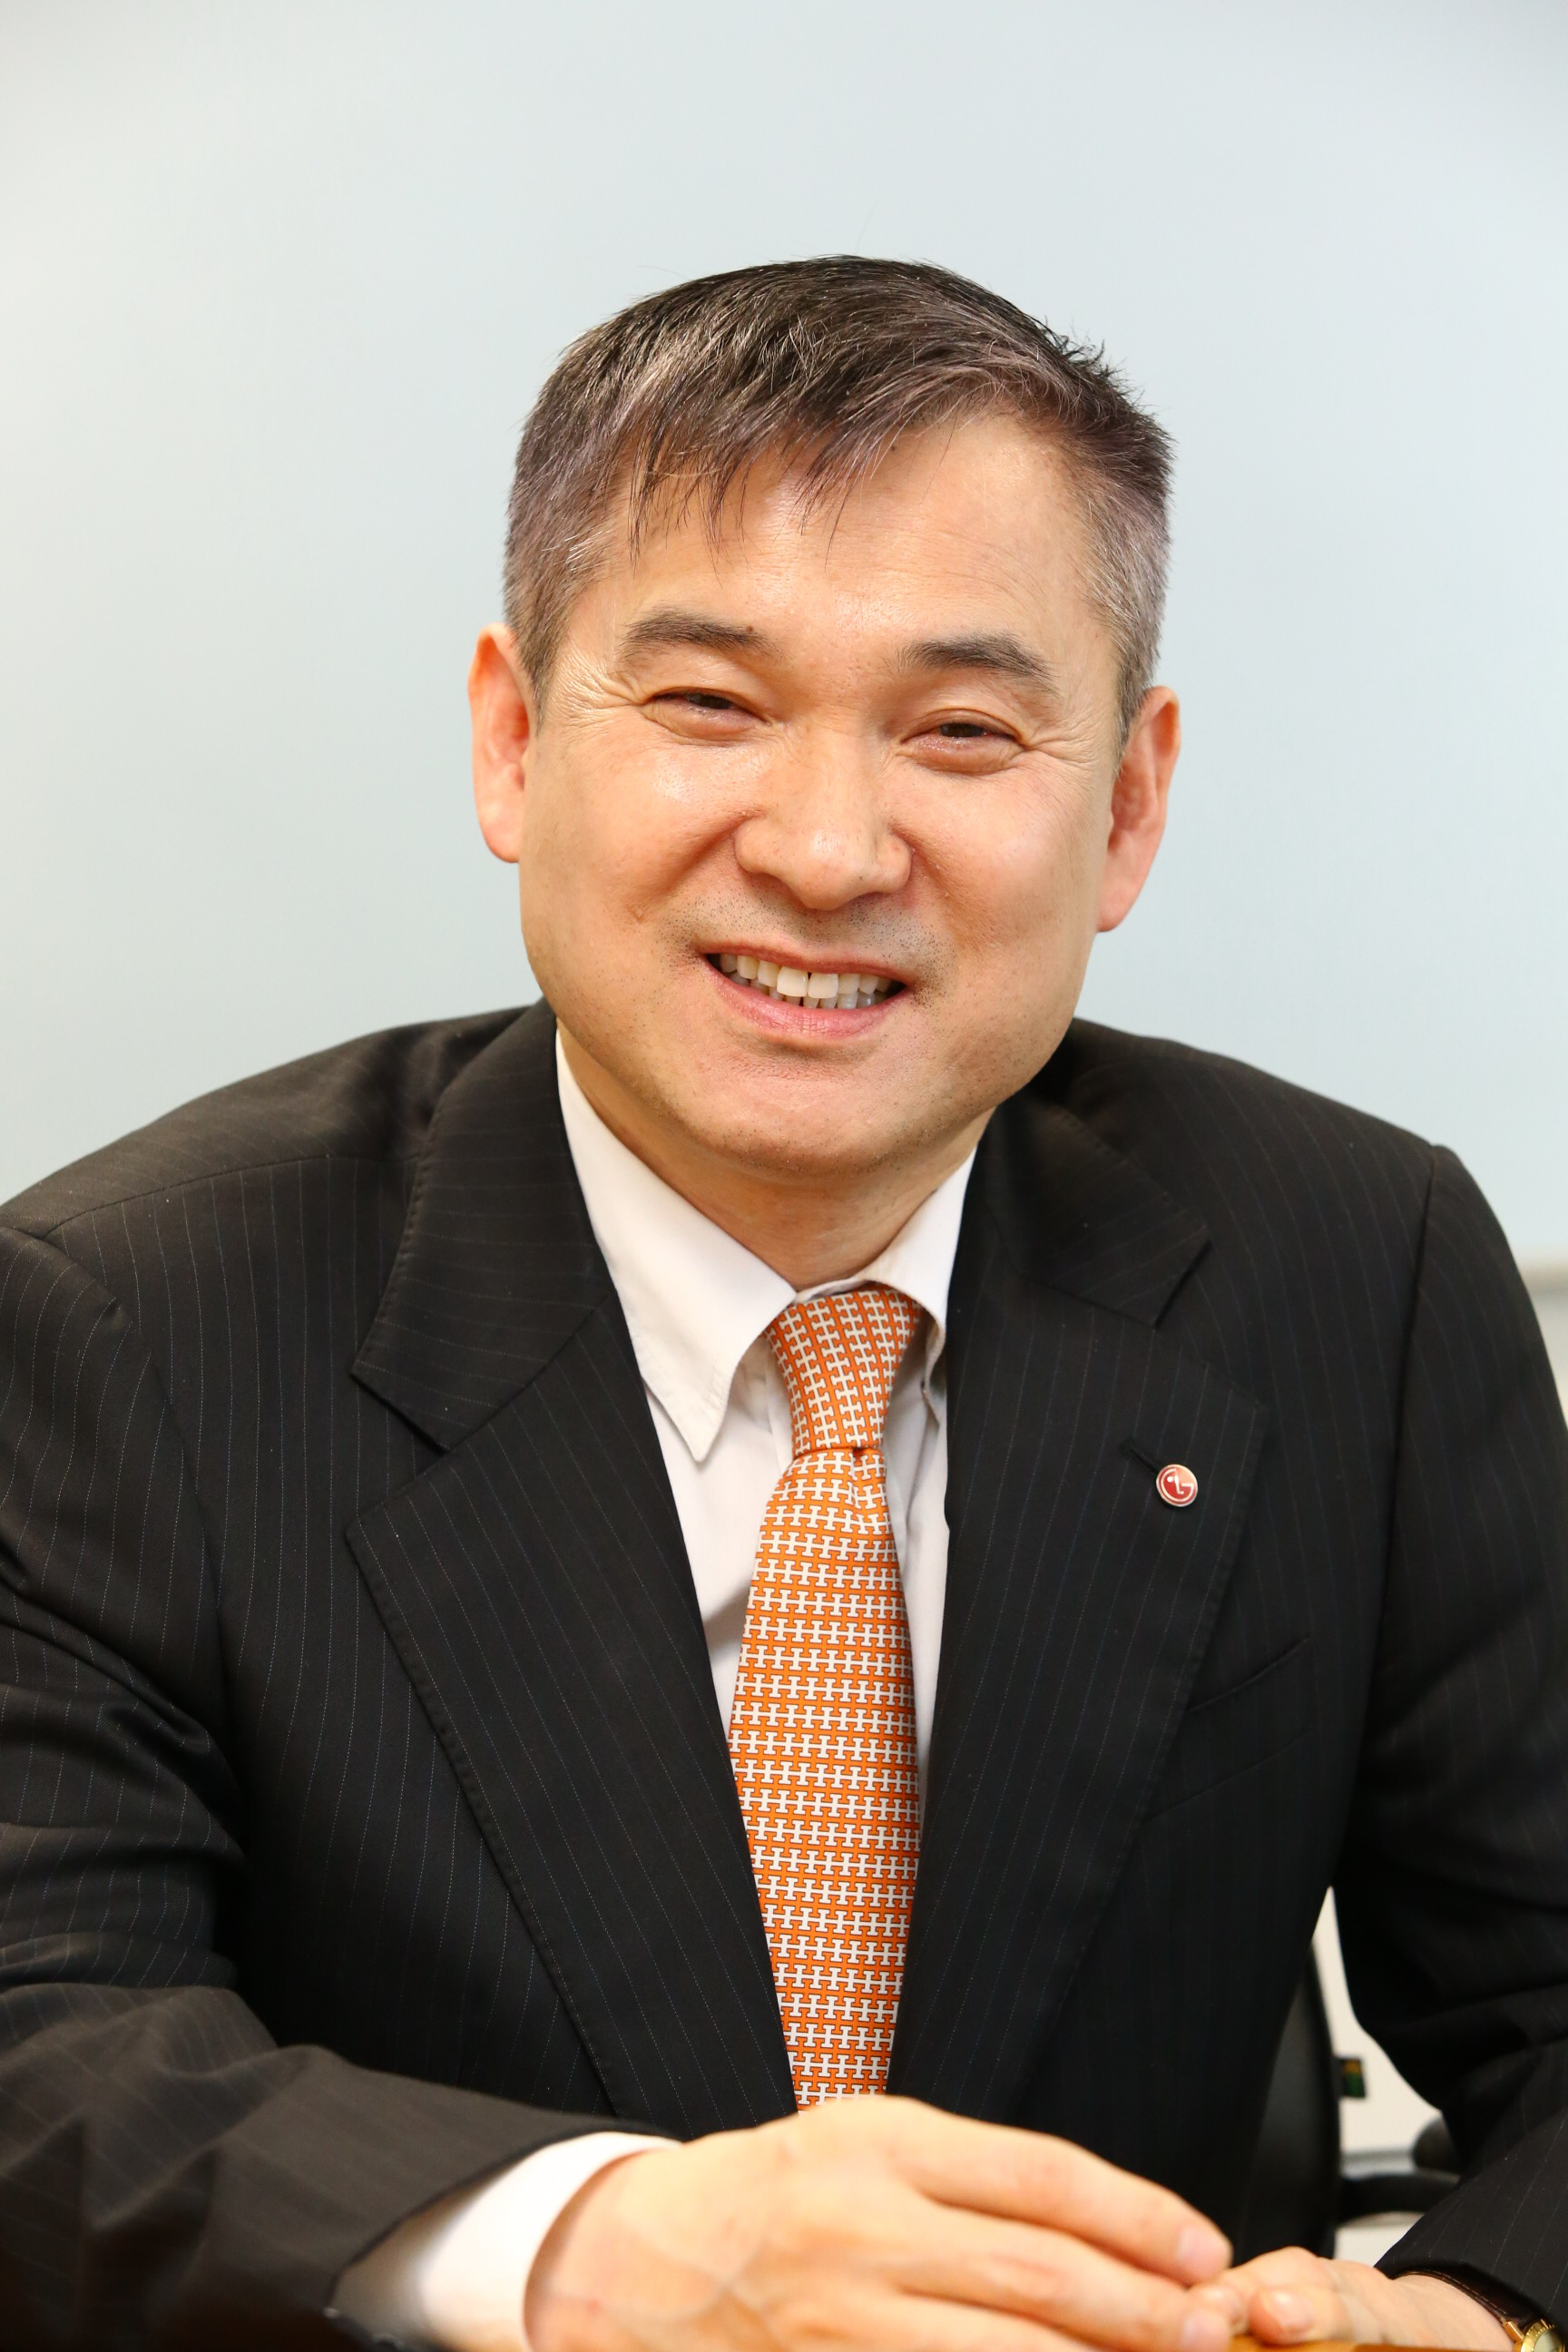 A headshot of Hyun-hoi Ha, president and chief executive officer of the LG Home Entertainment Company.